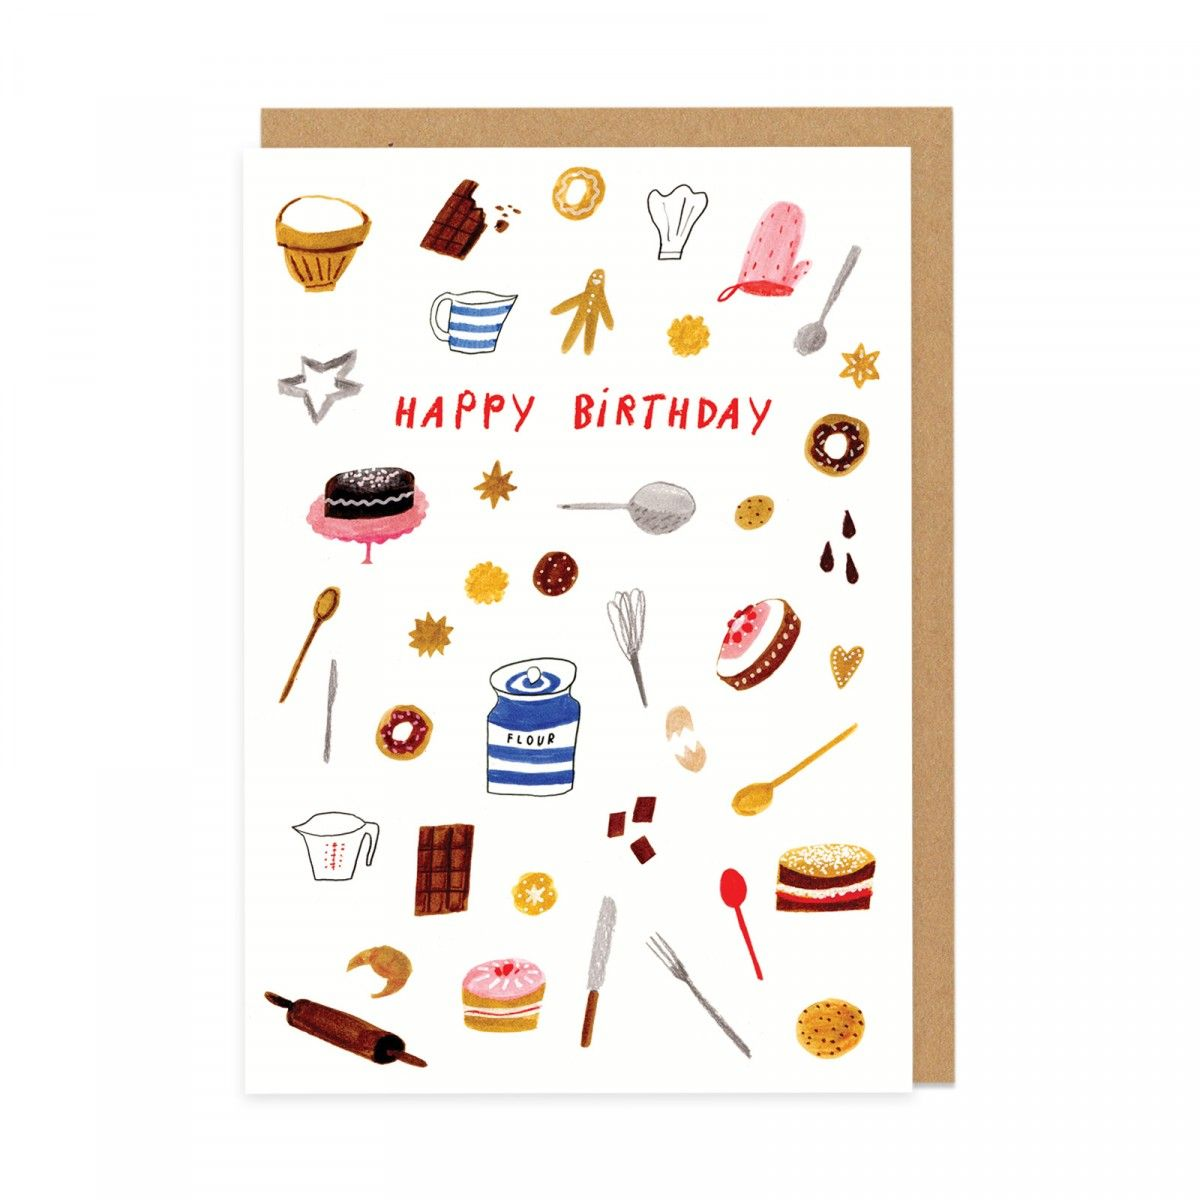 Nina Cosfords Design Forms Part Of Our Collection Of Cute Funny